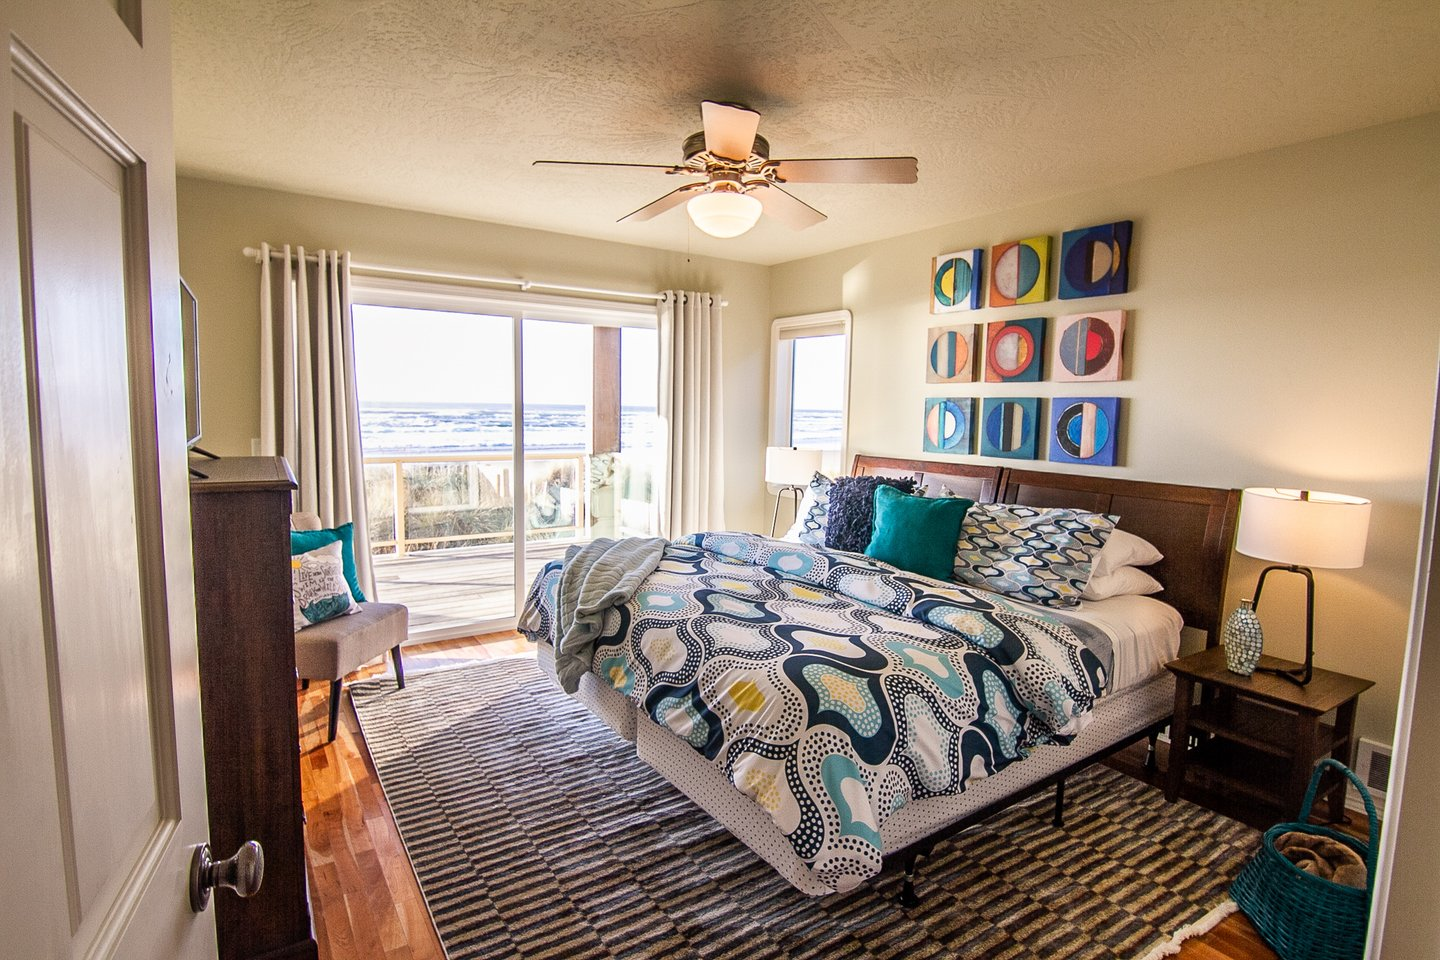 One of the bedrooms downstairs opens up to the back deck with amazing ocean views.